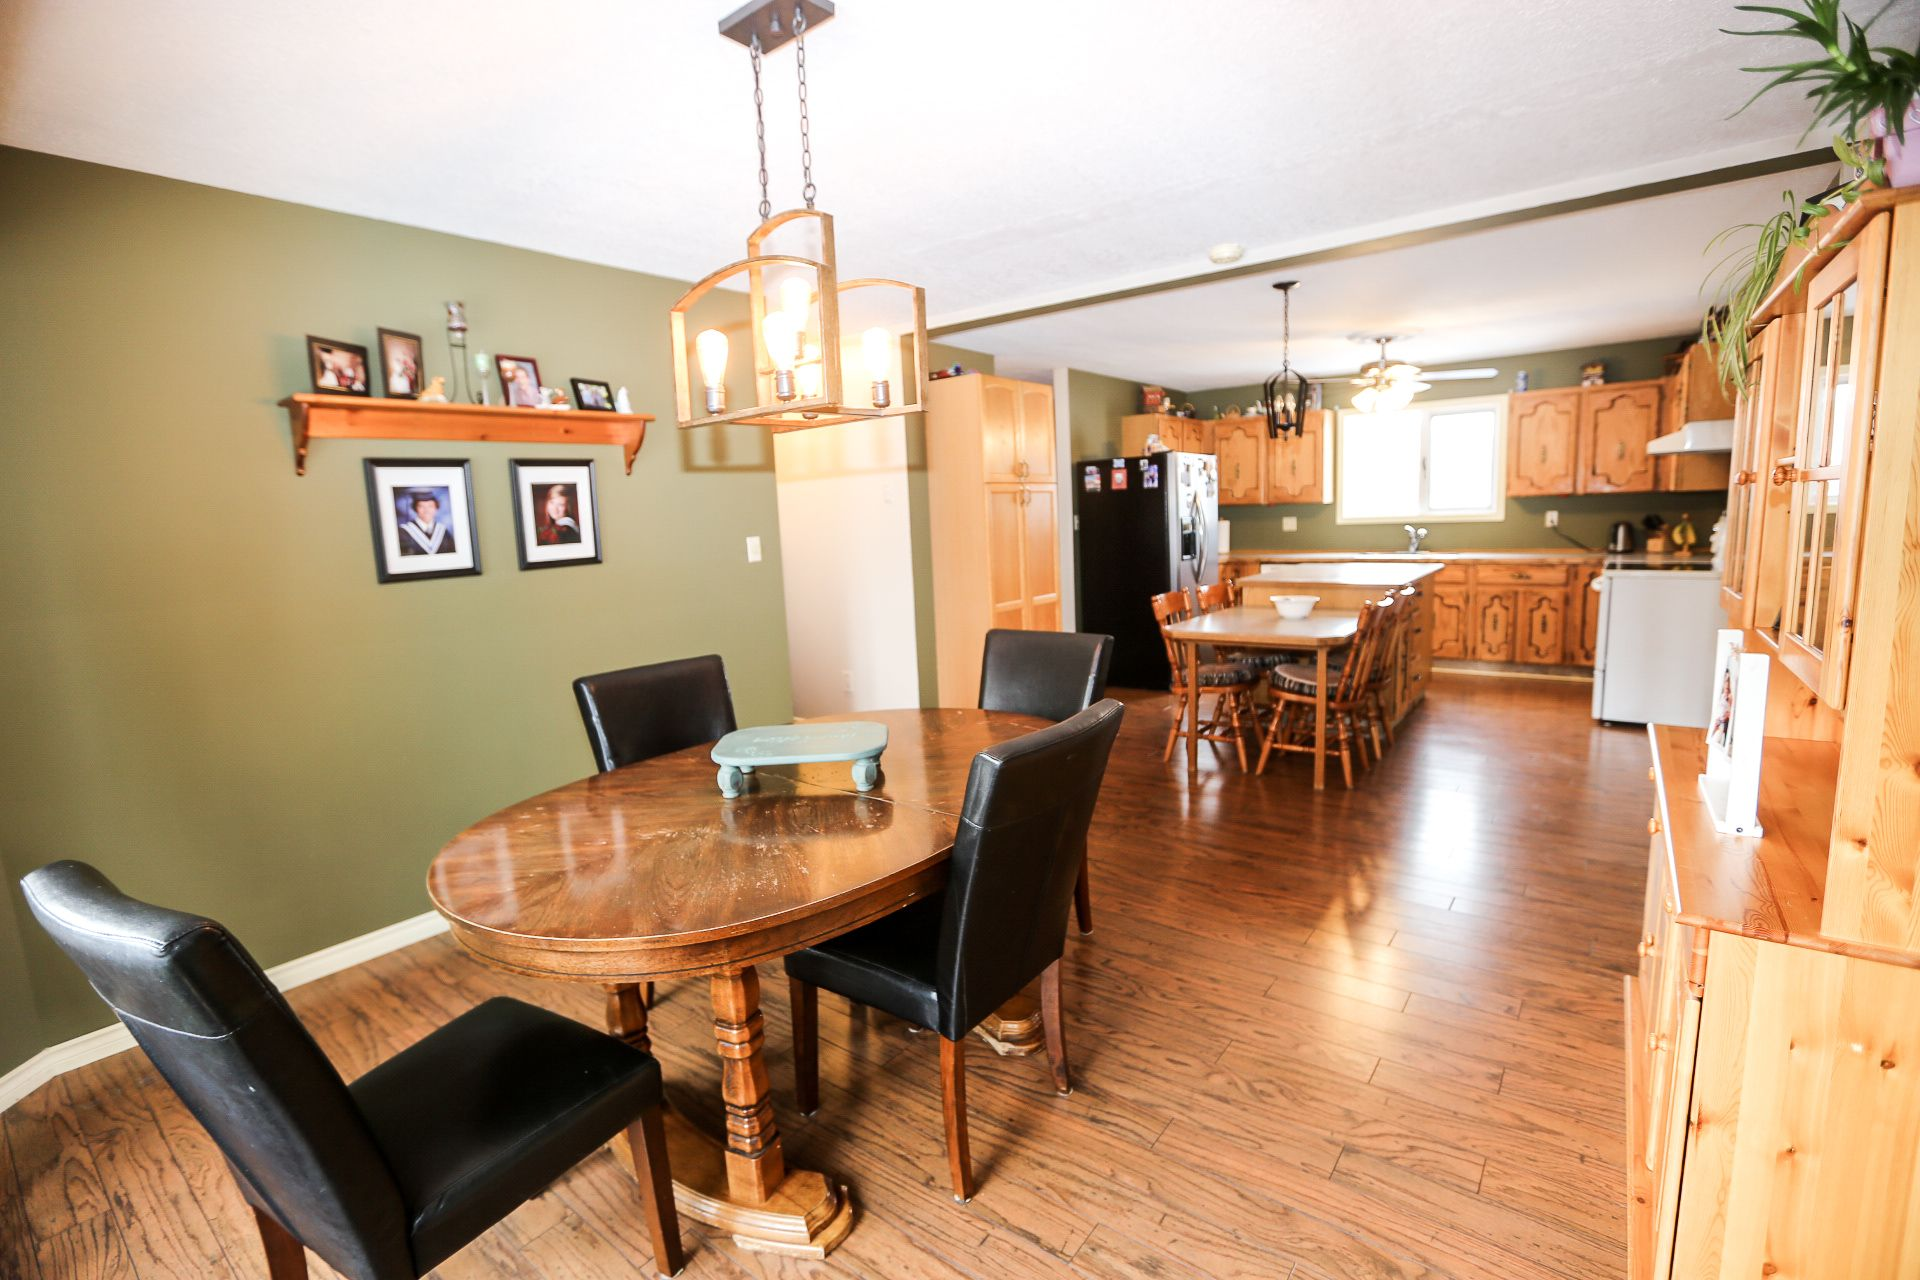 Photo 7: Photos: 434 ROBIN DRIVE: BARRIERE House for sale (NORTH EAST)  : MLS®# 160553